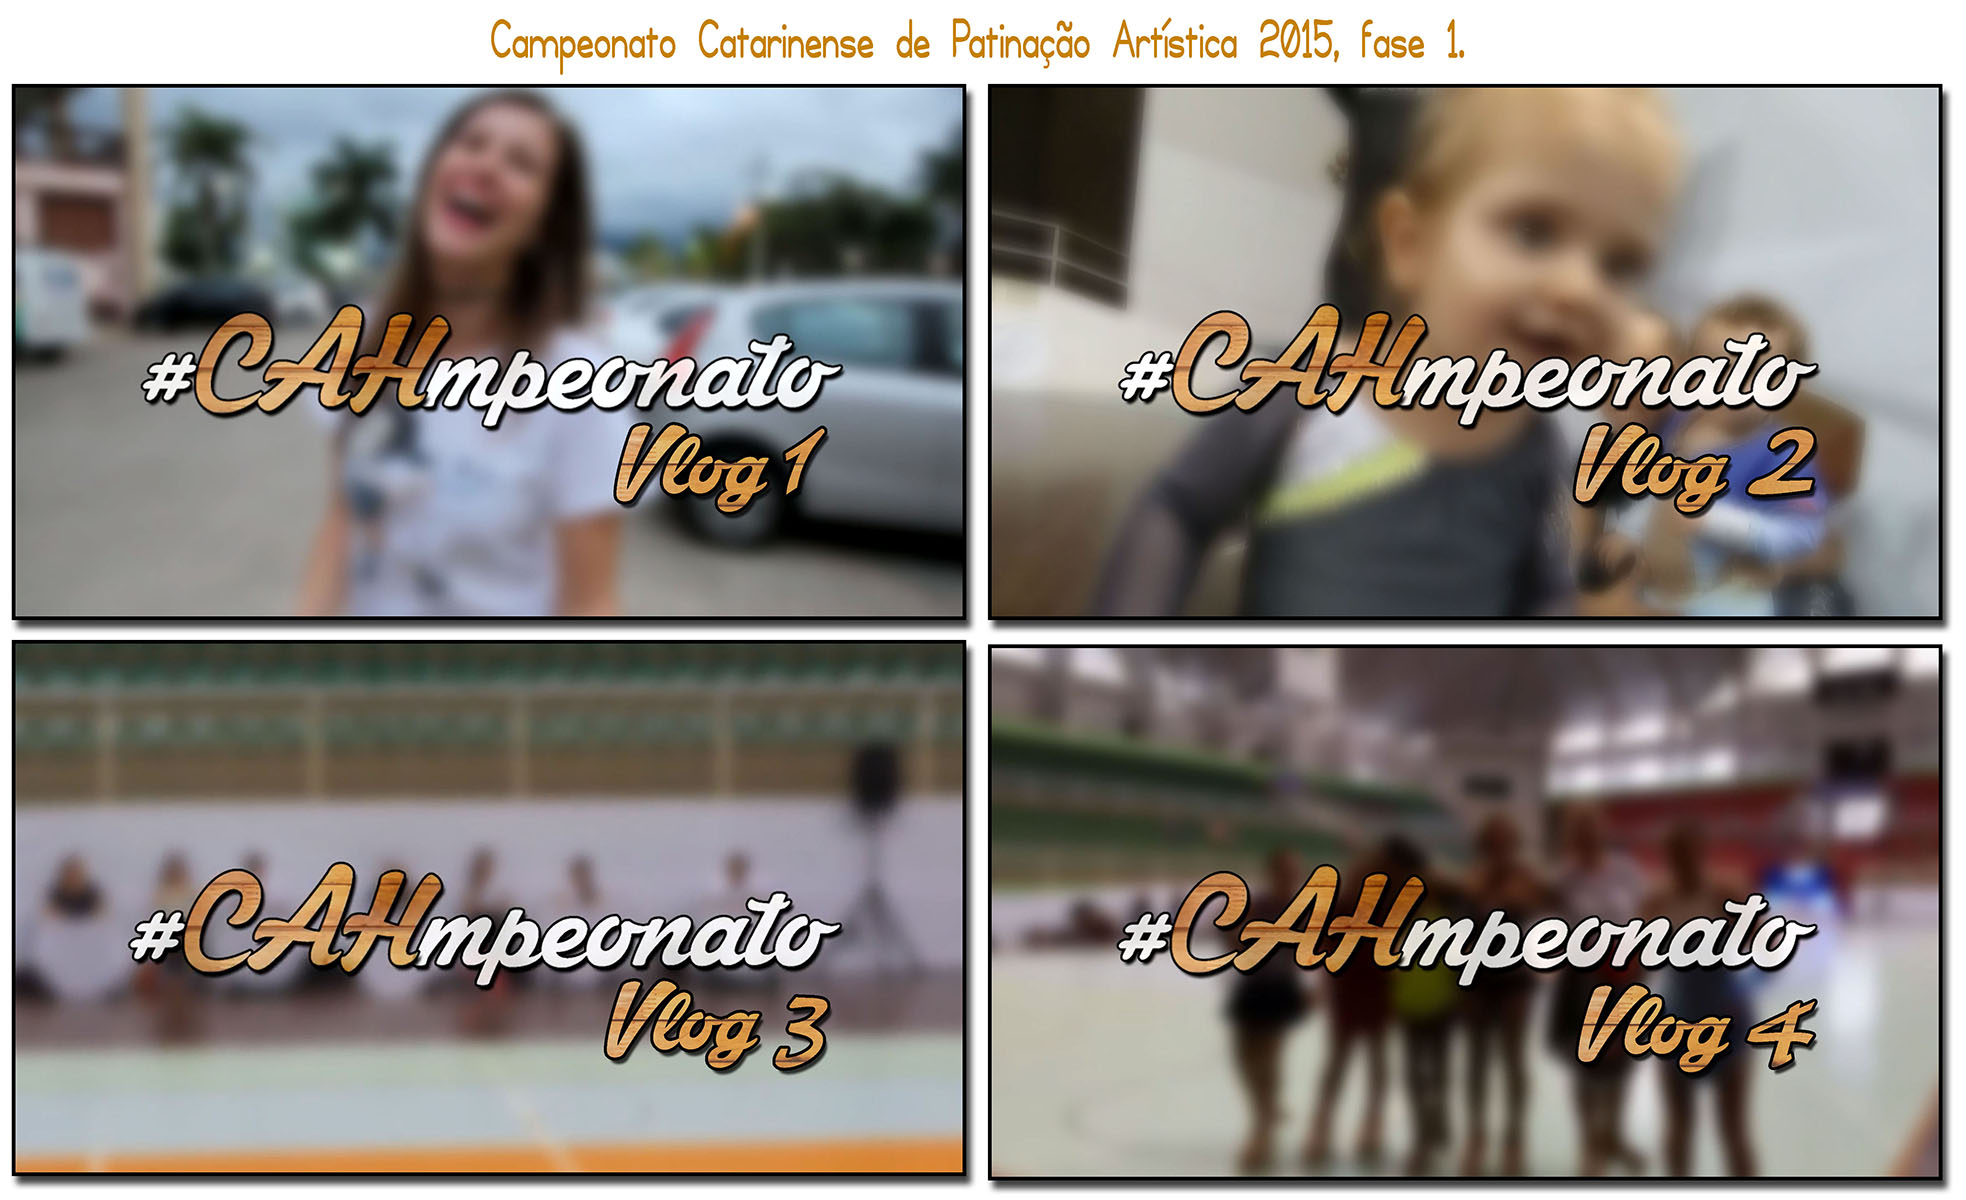 camilla-guerra-canal-blog-patinação-artística-cahmpeonato-campeonato-catarinense-fase-1-2015-patins-vlog-vídeo-do-youtube